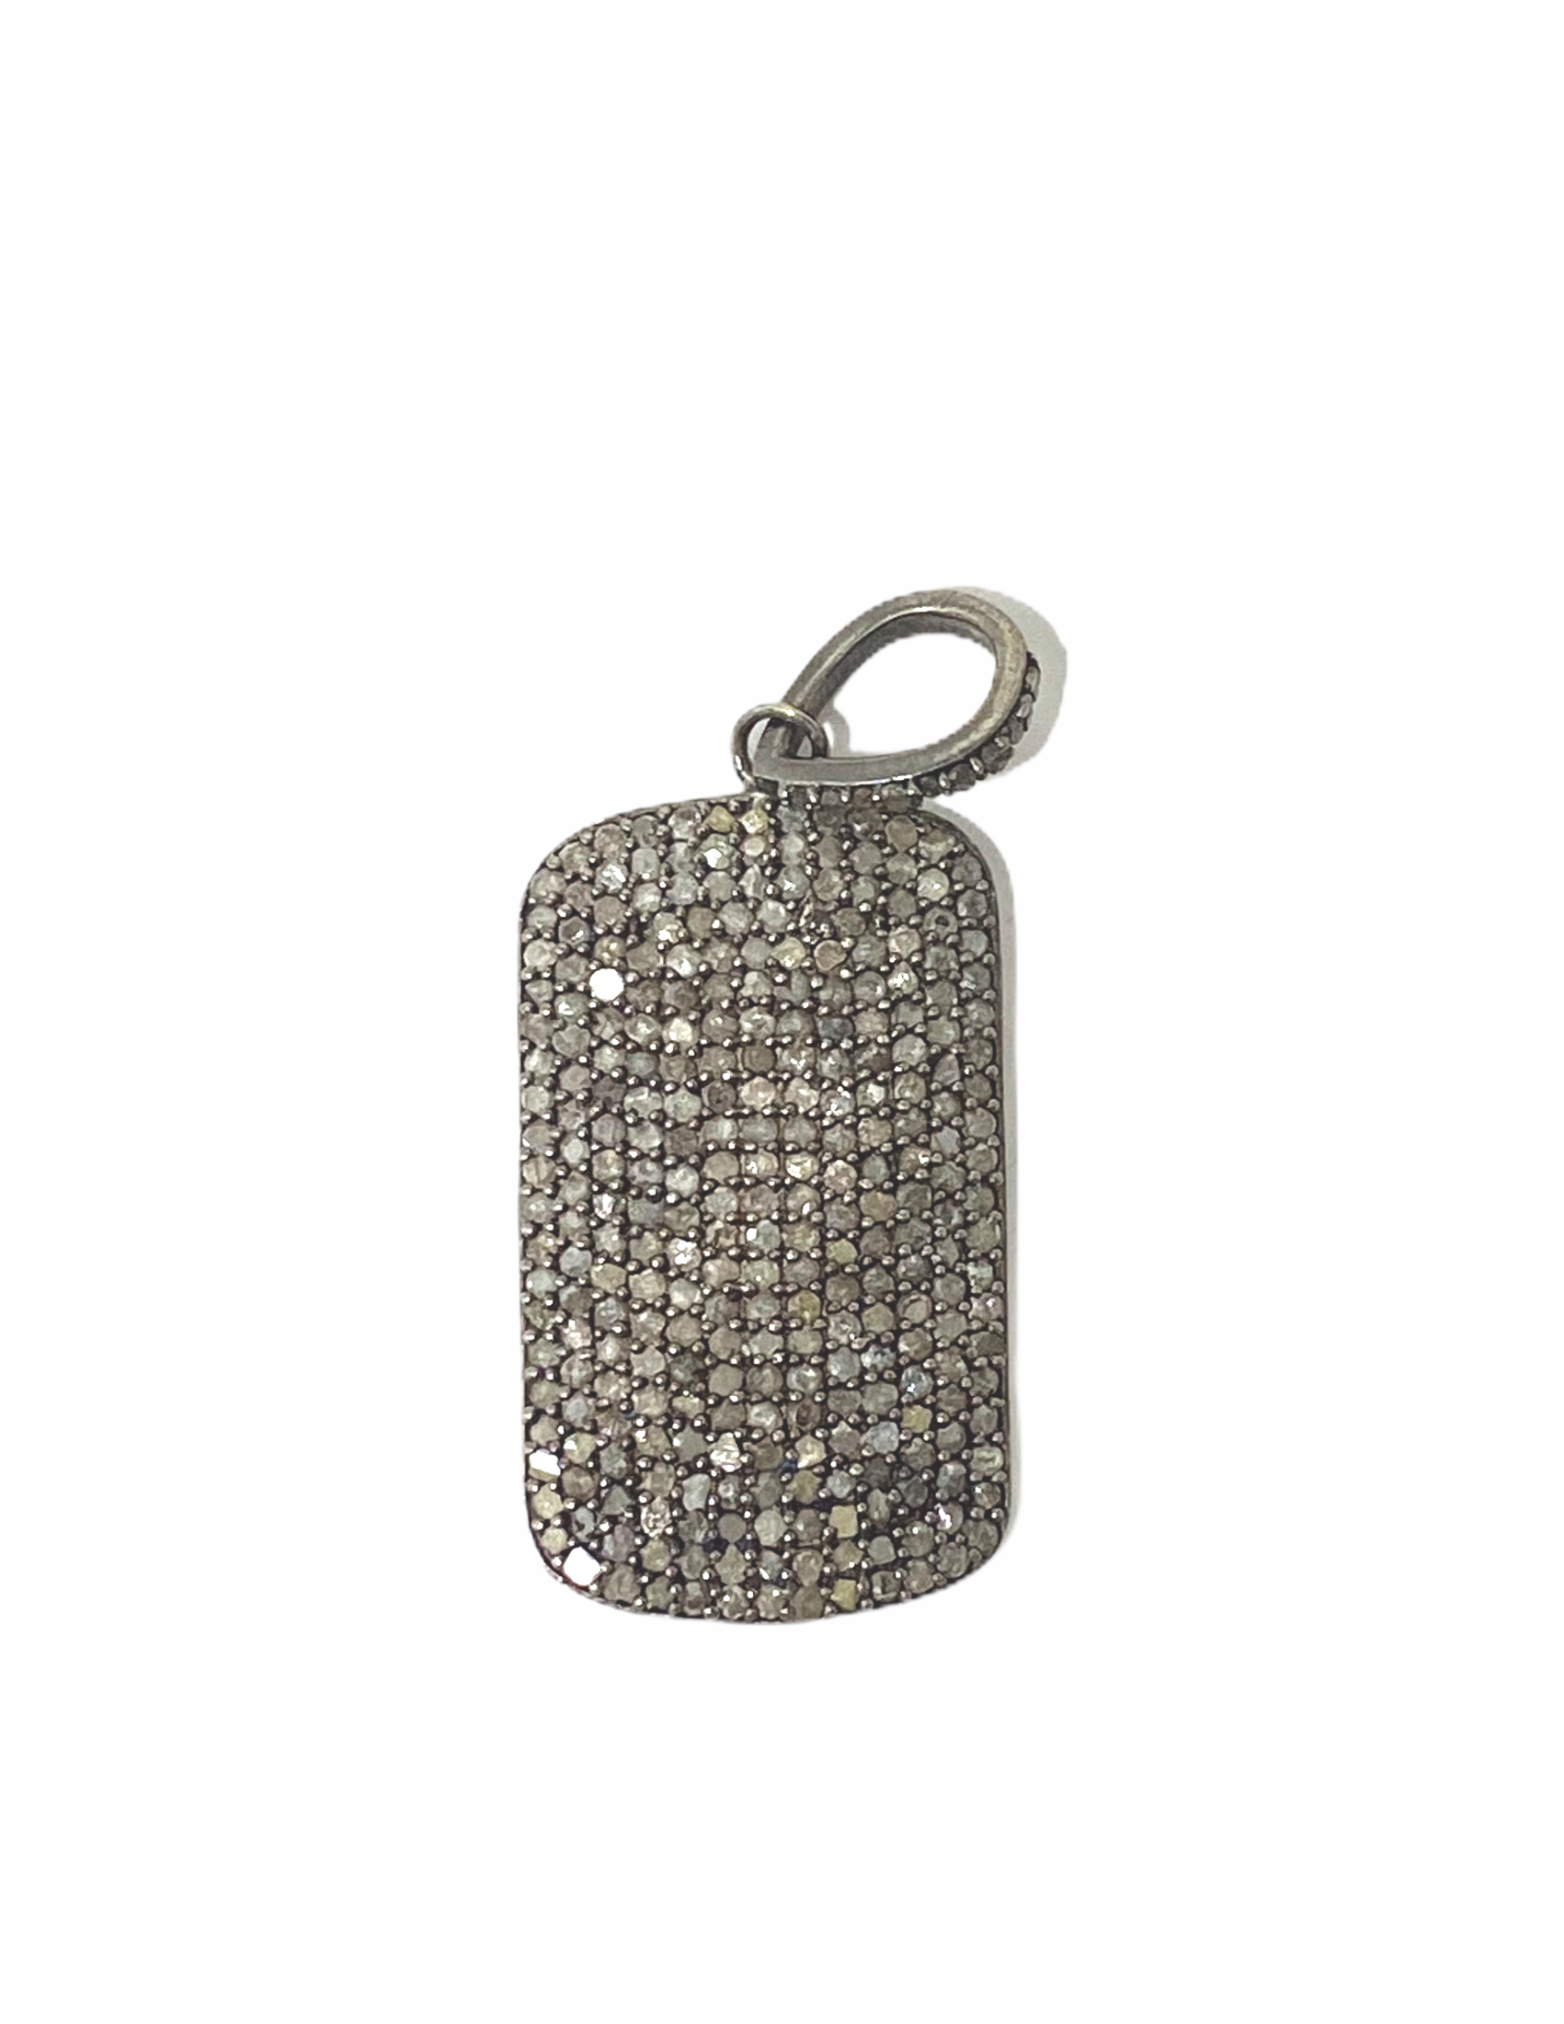 S.Row Designs Diamond Dog Tag Pendant